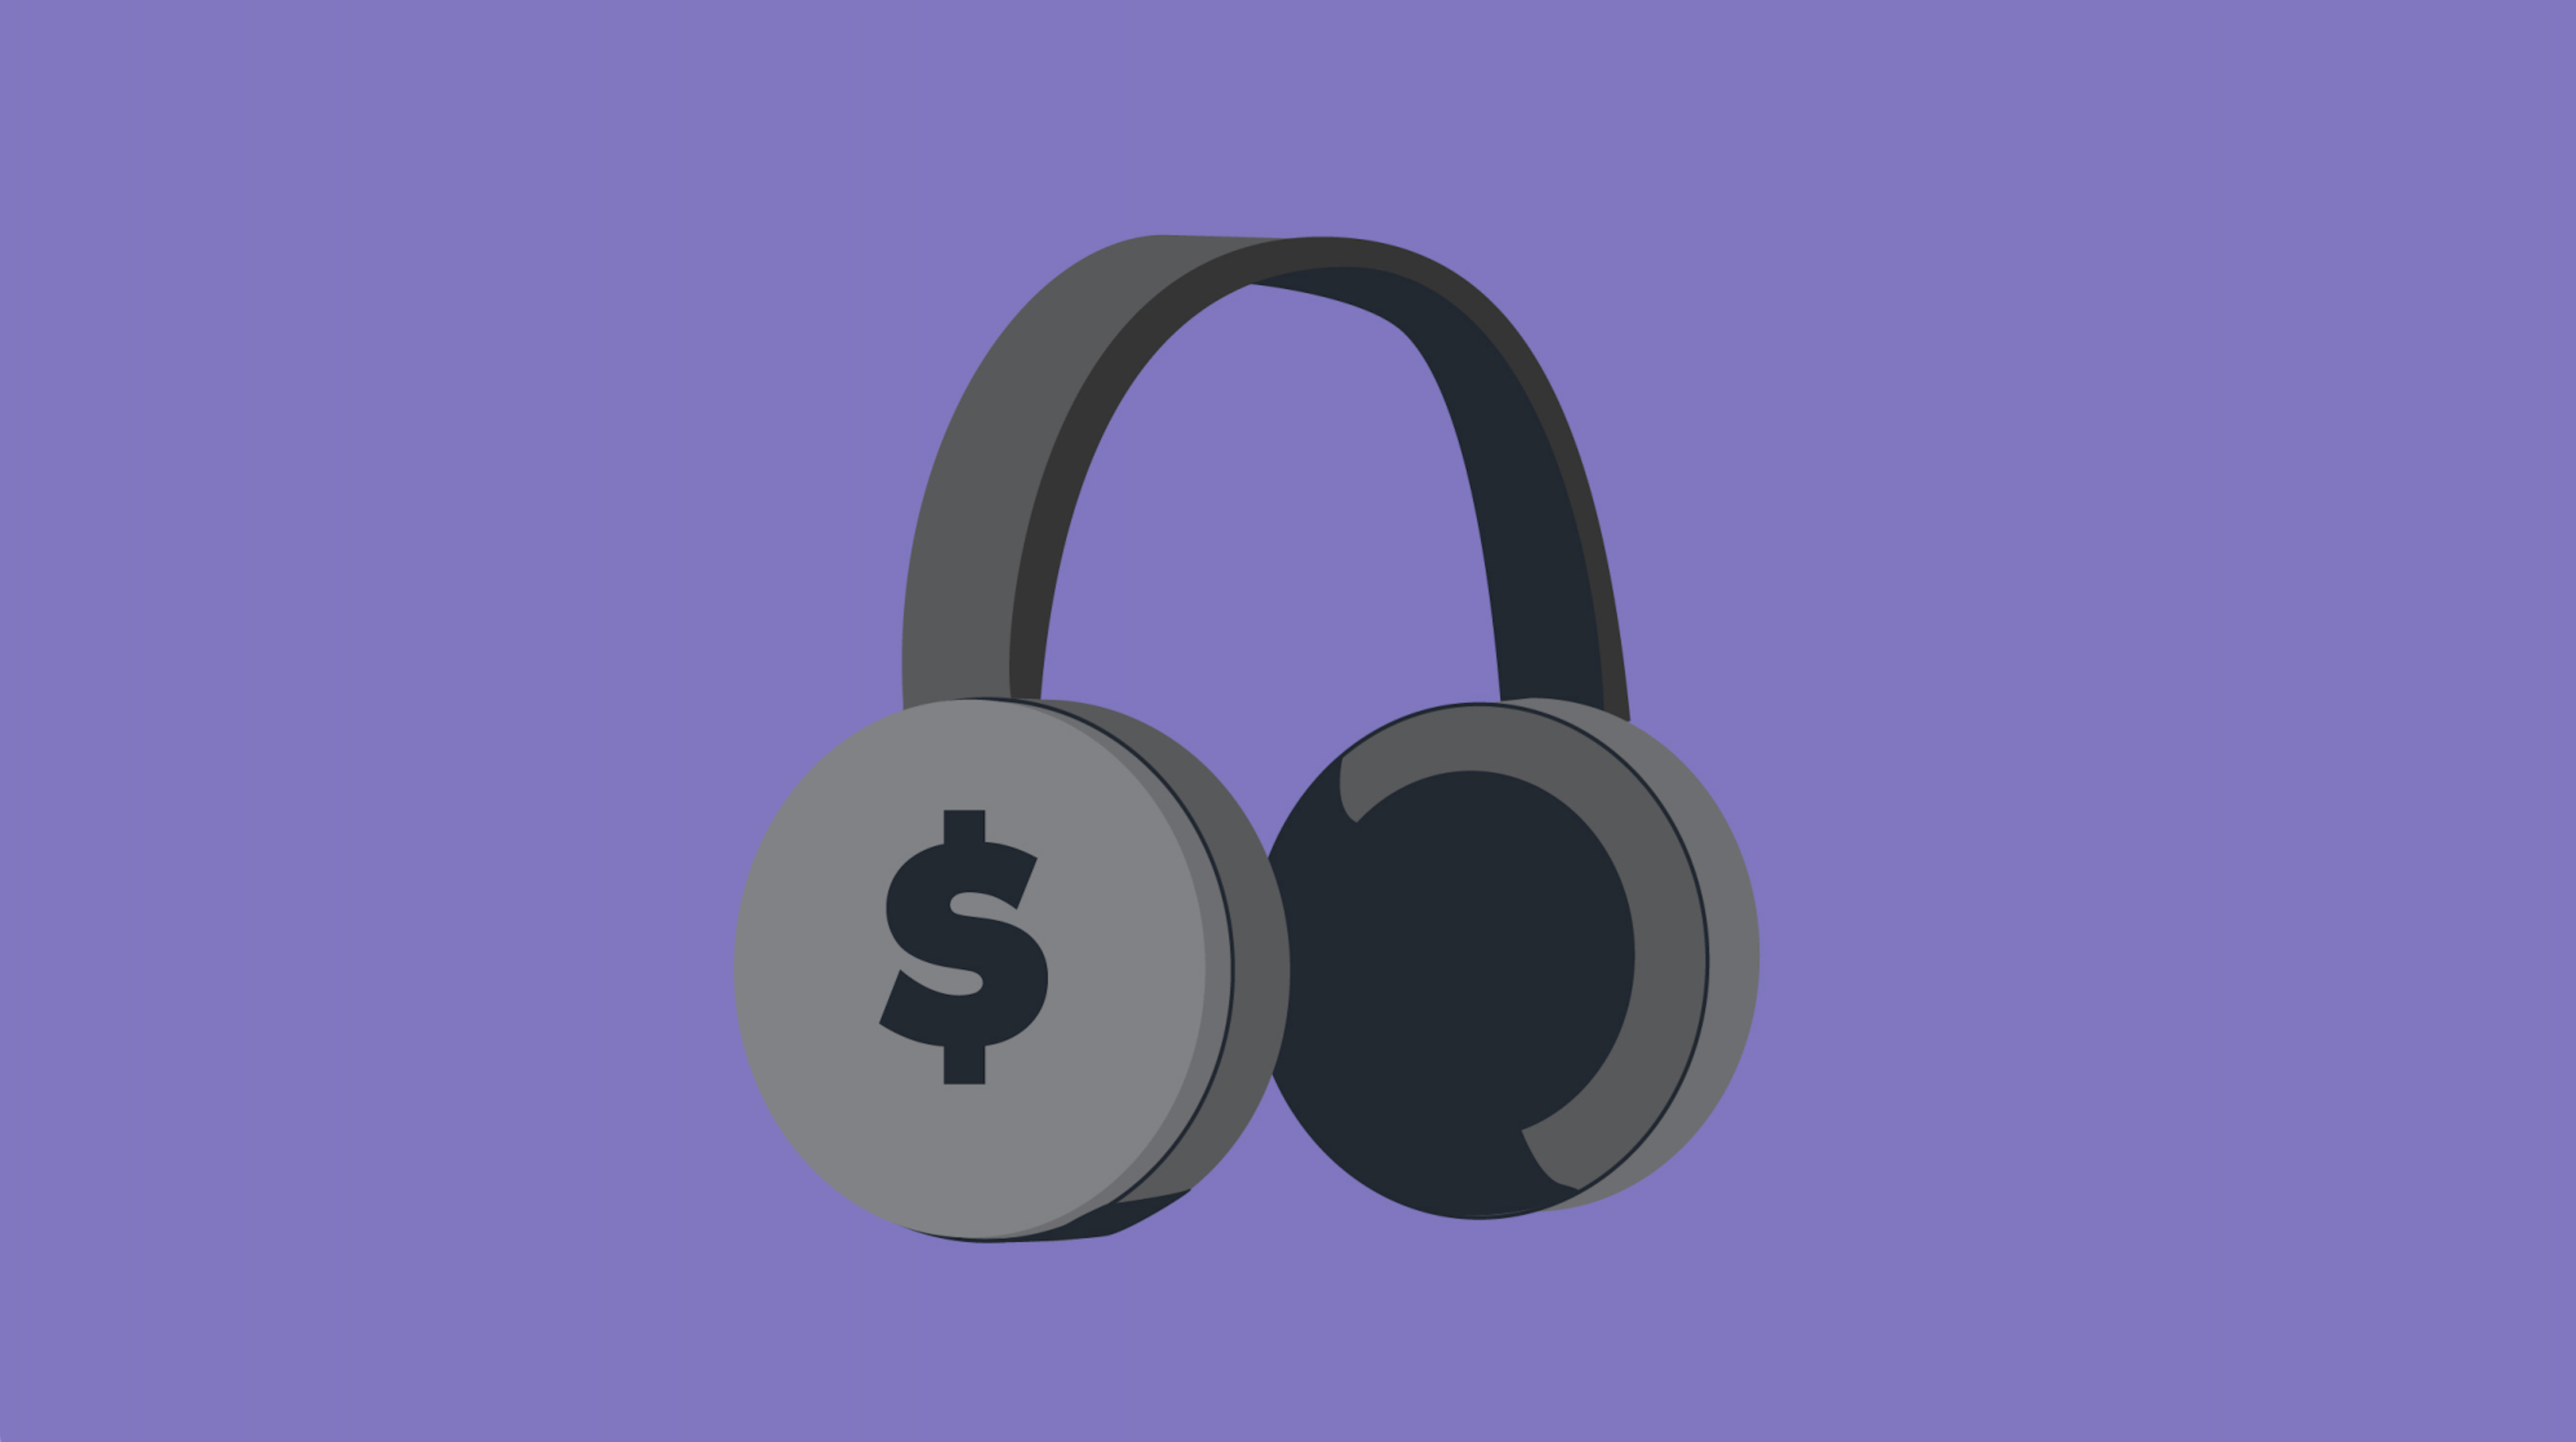 Illustration of headphones with a dollar sign on it.